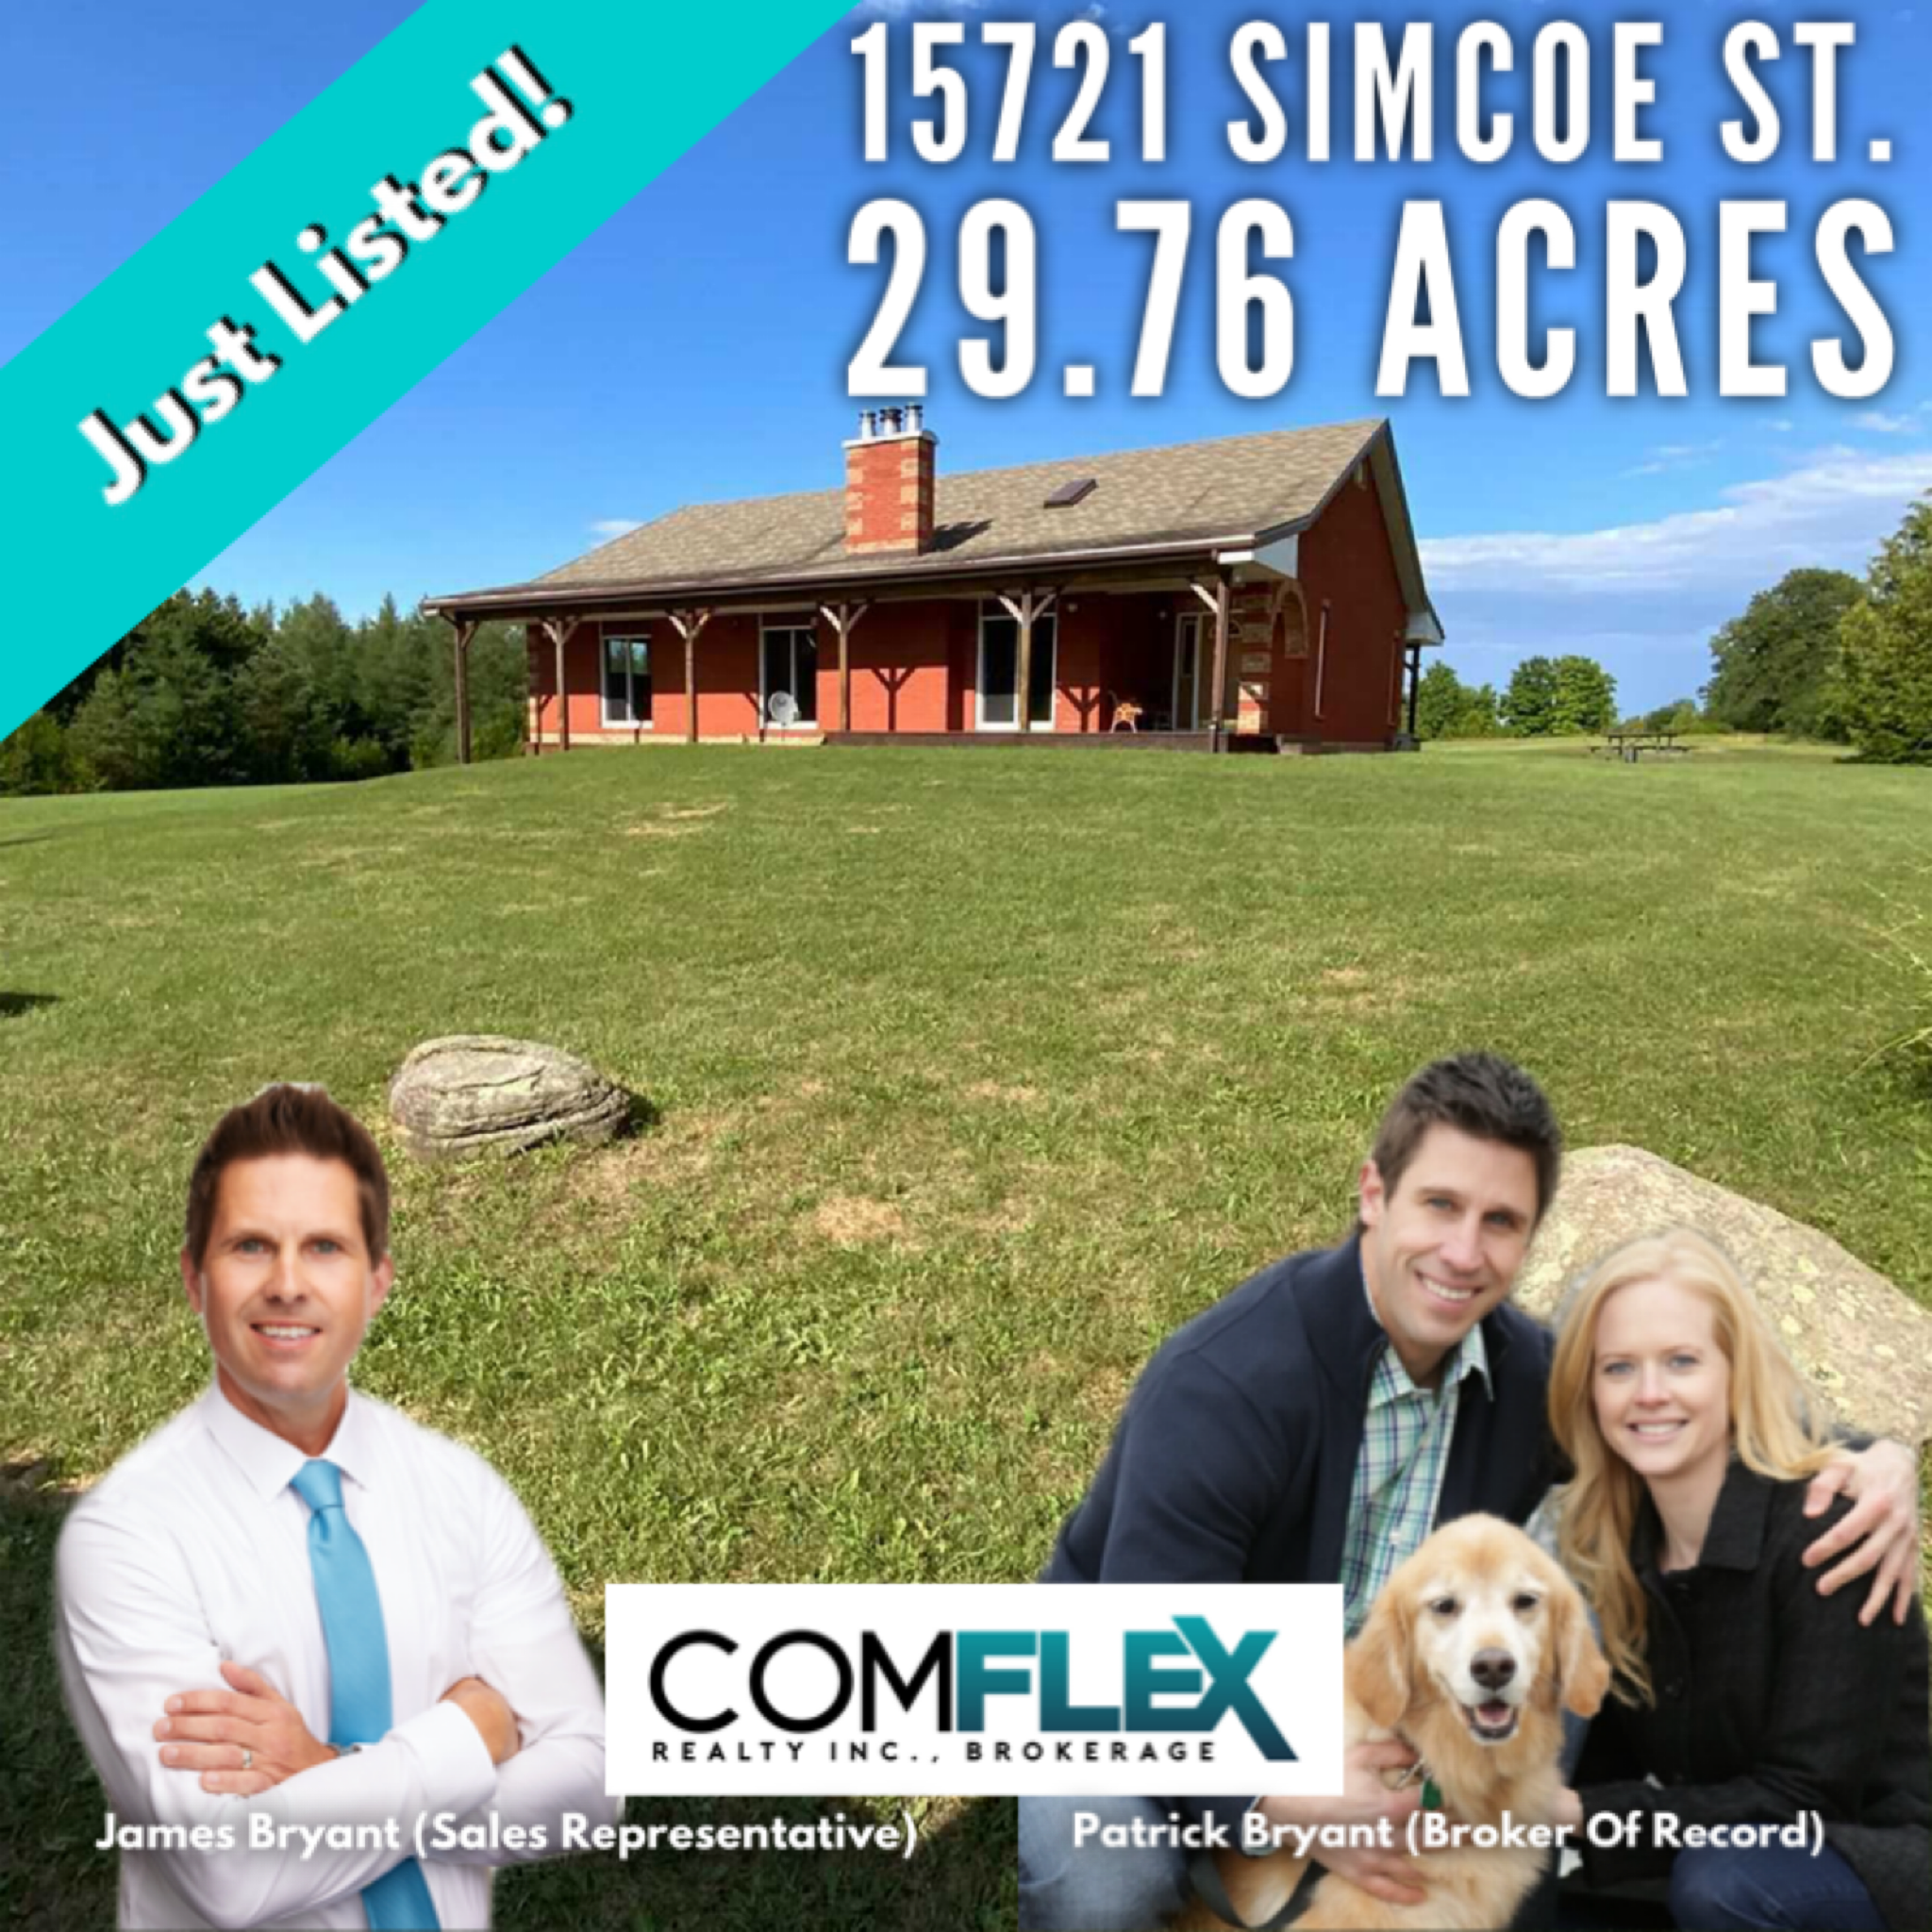 JUST LISTED! 15721 SIMCOE STREET CUSTOM BUNGALOW SITUATED ON 29.76 ACRES